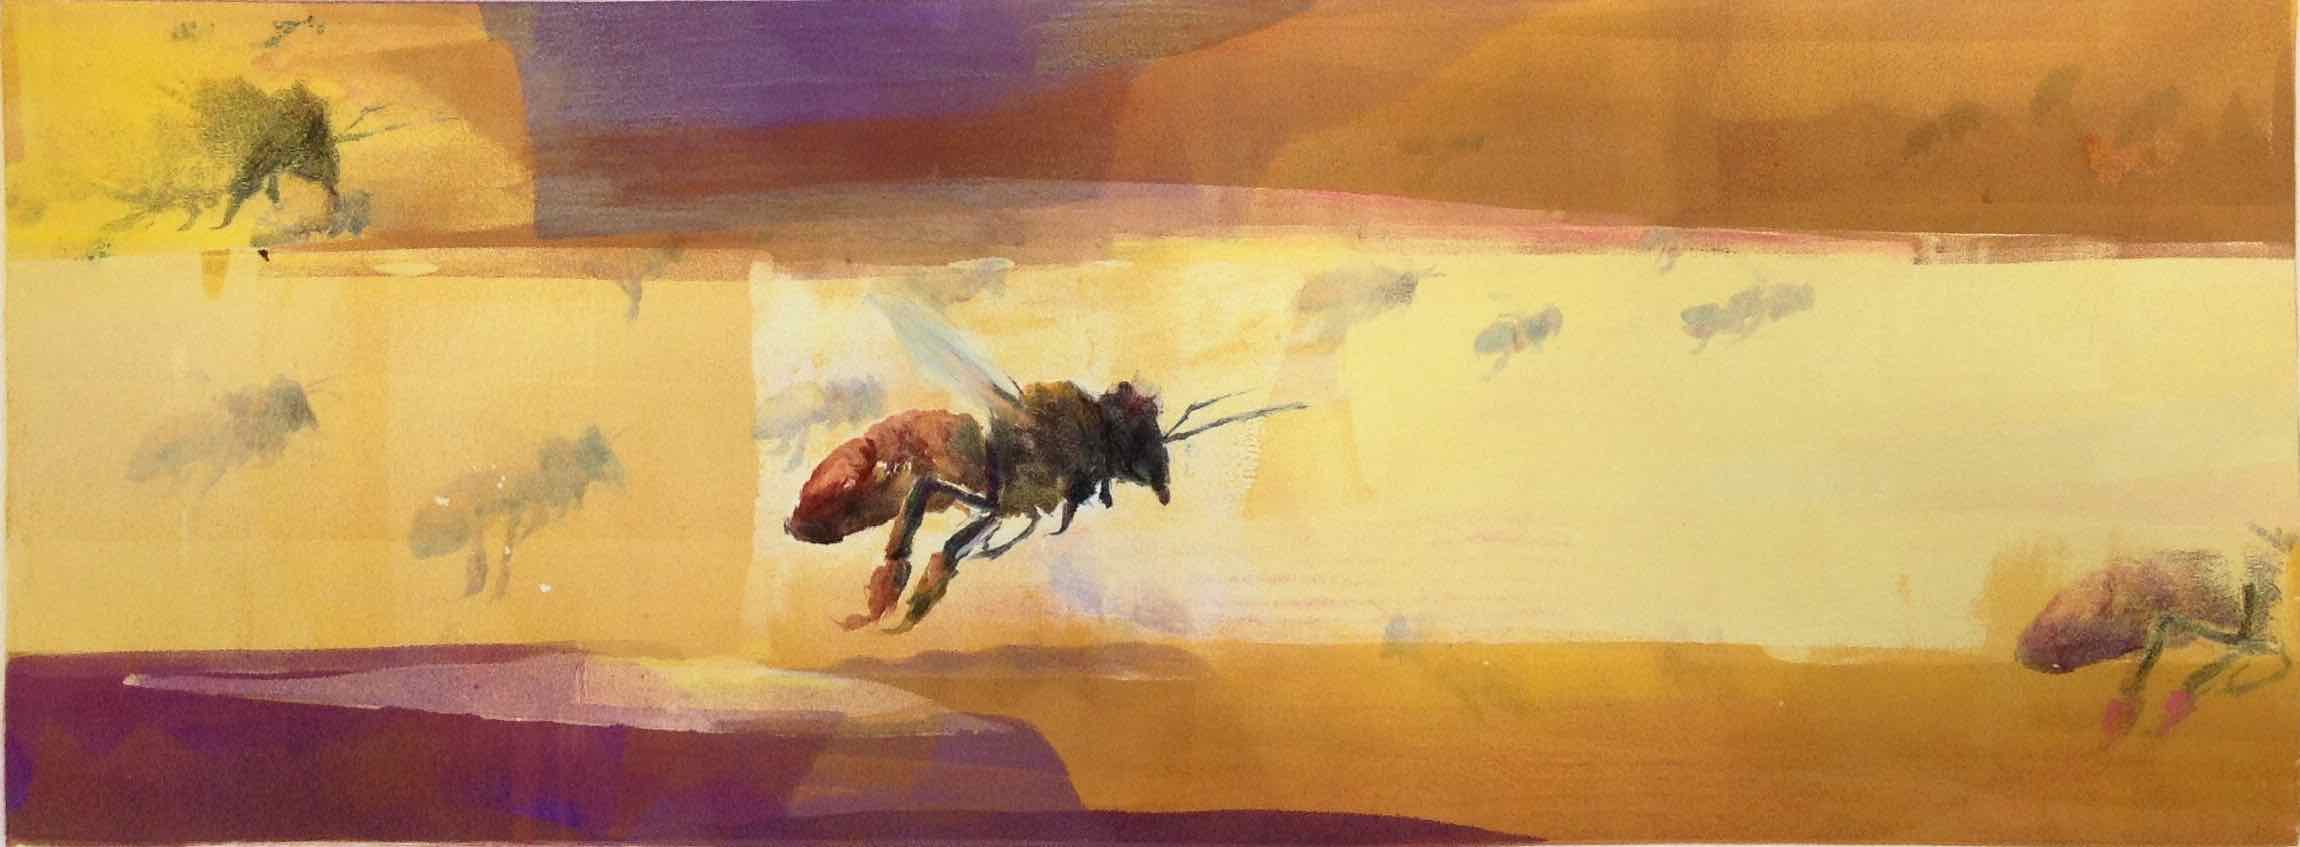 Honeybee Flight III